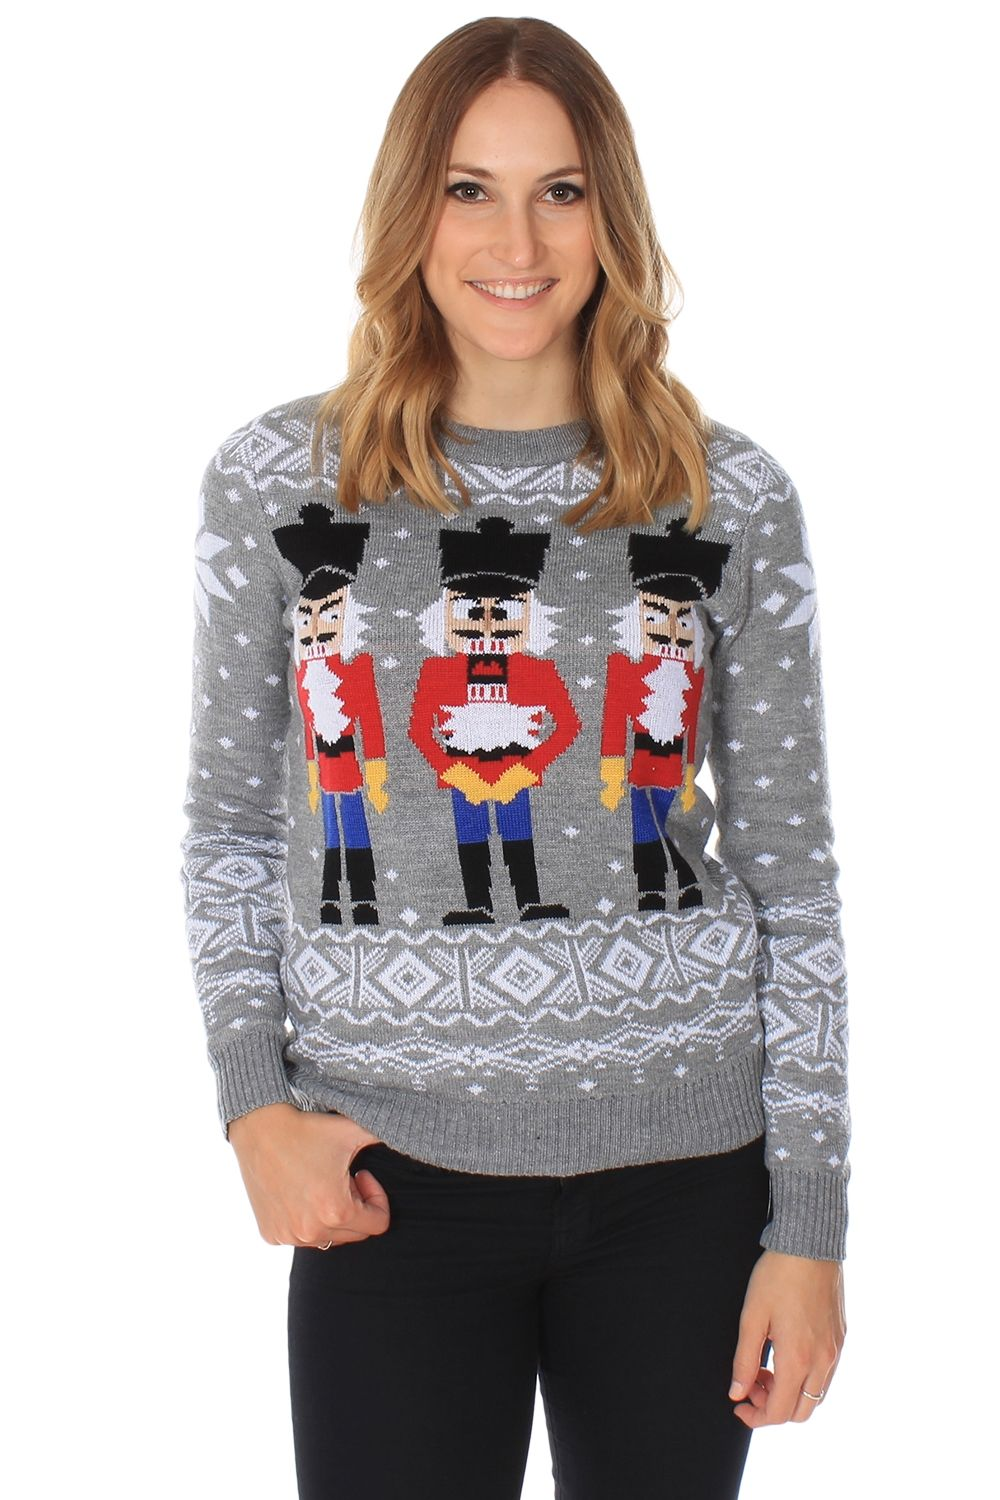 Women's Nutcracker Sweater | Christmas sweaters, Tacky